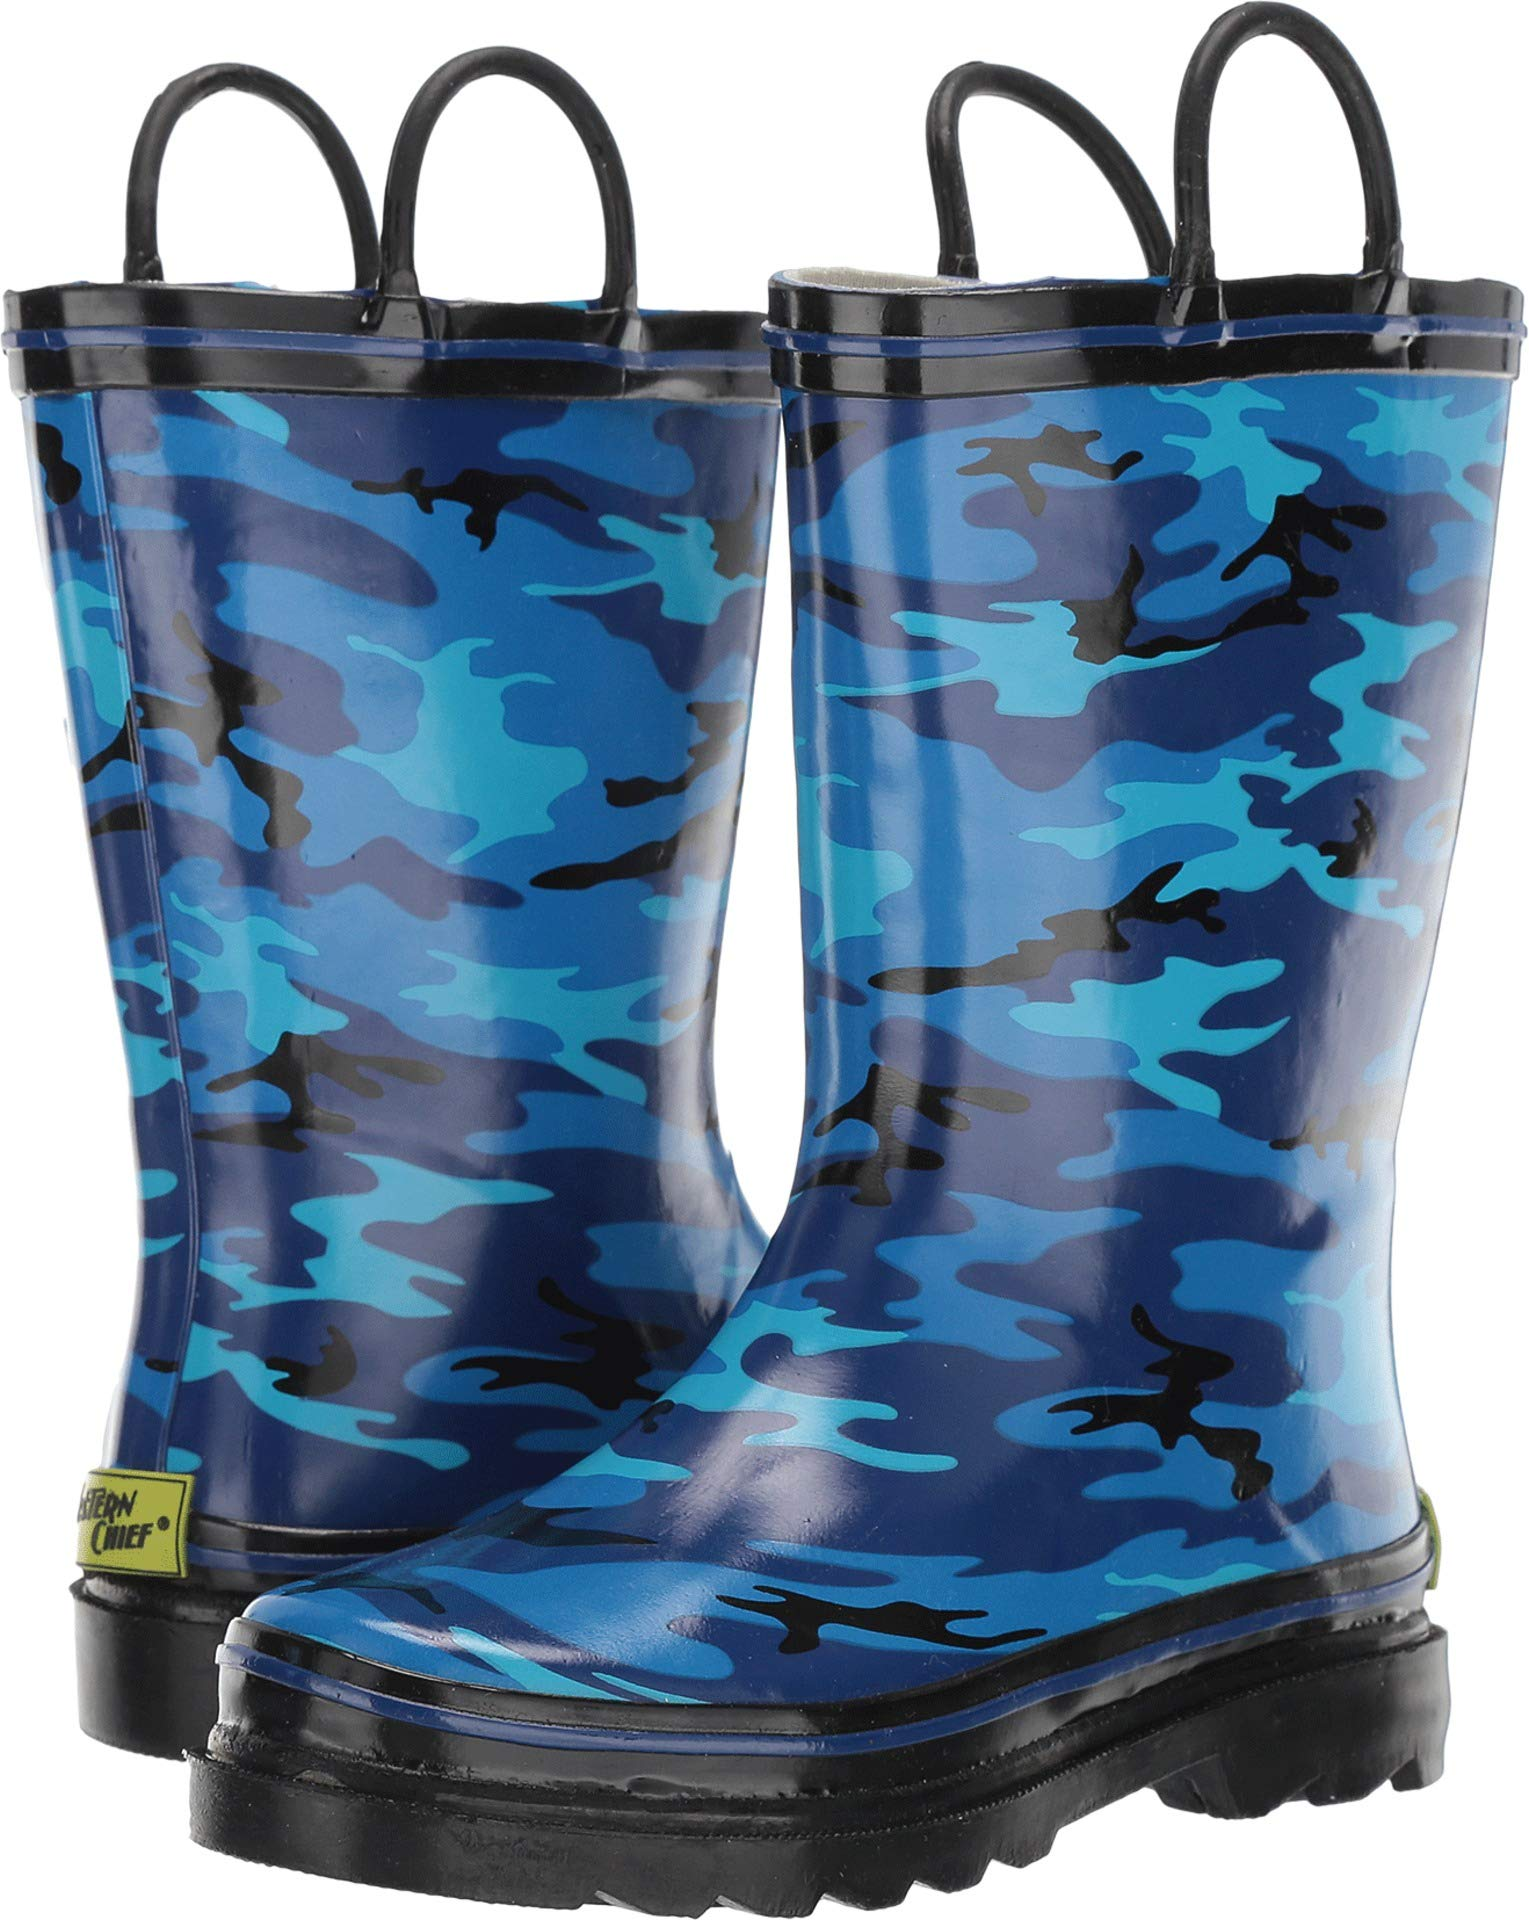 Western Chief Boys Kid's Waterproof Printed Rain Boot, Hunter's Camo, 13/1 M US Toddler